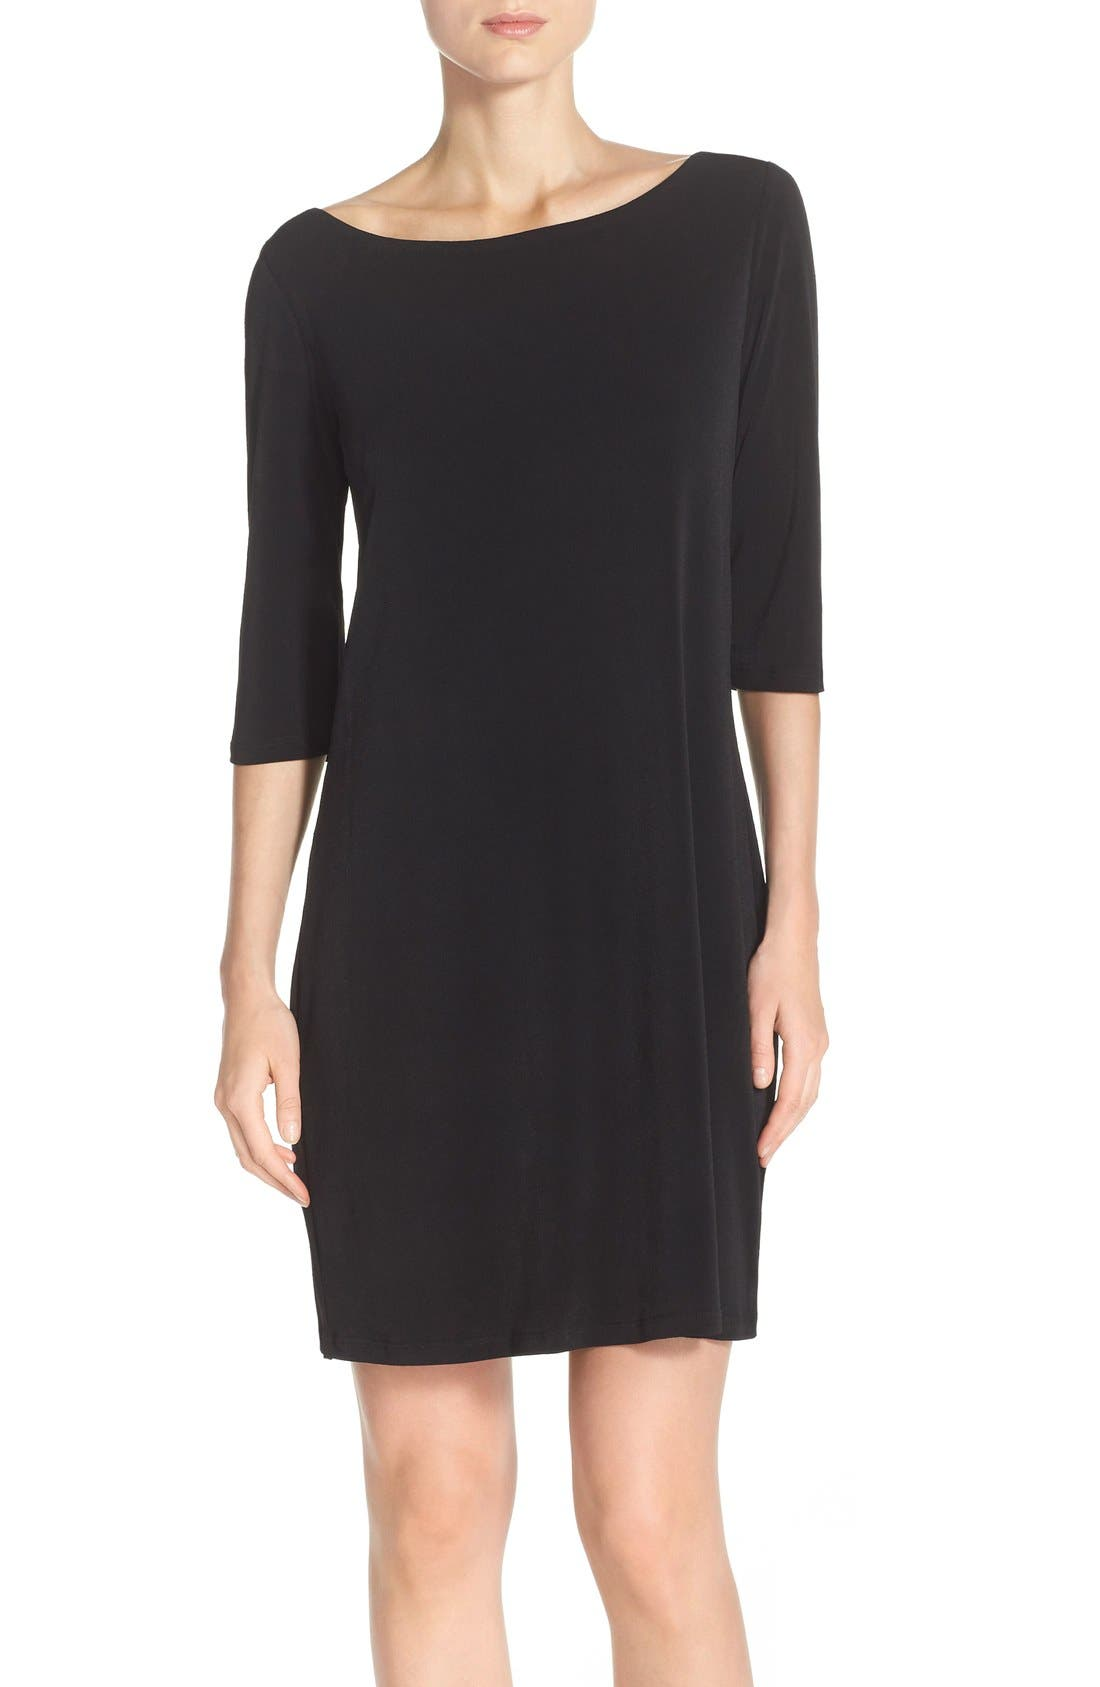 Alternate Image 1 Selected - Leota Dolman Sleeve Jersey Sheath Dress